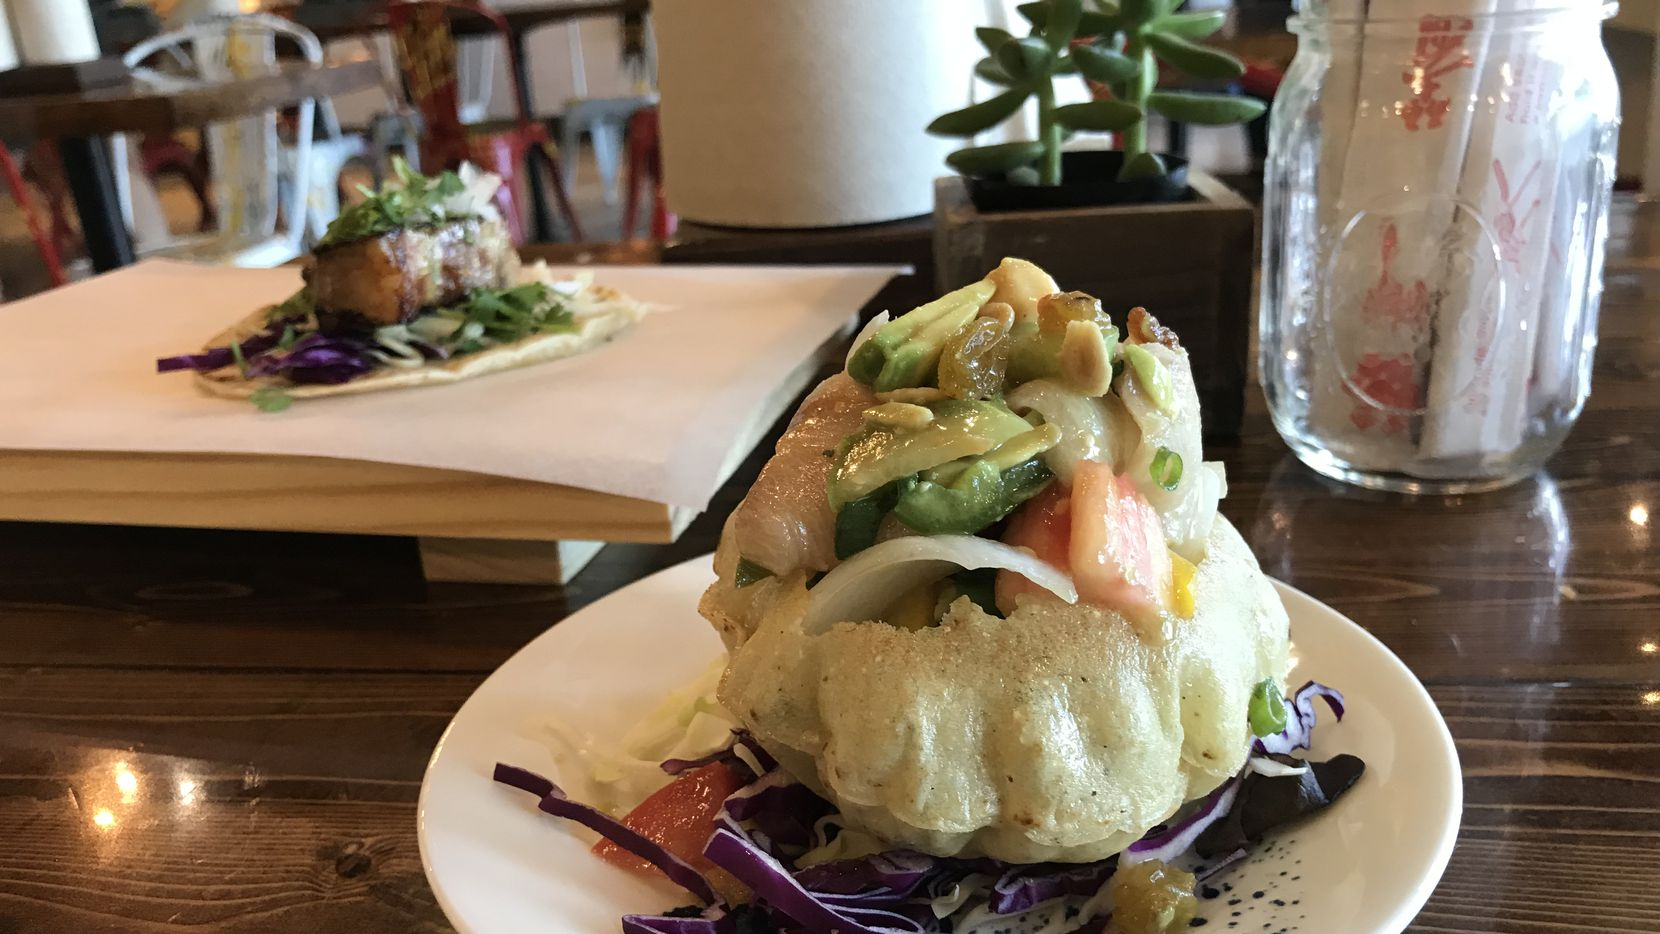 Chef Paul Qui, who has been at the center of a public domestic abuse case, recently opened a Japanese taco shop in Richardson called TacQui. Pictured: the crudo tostada with yellowtail and the pork belly taco.